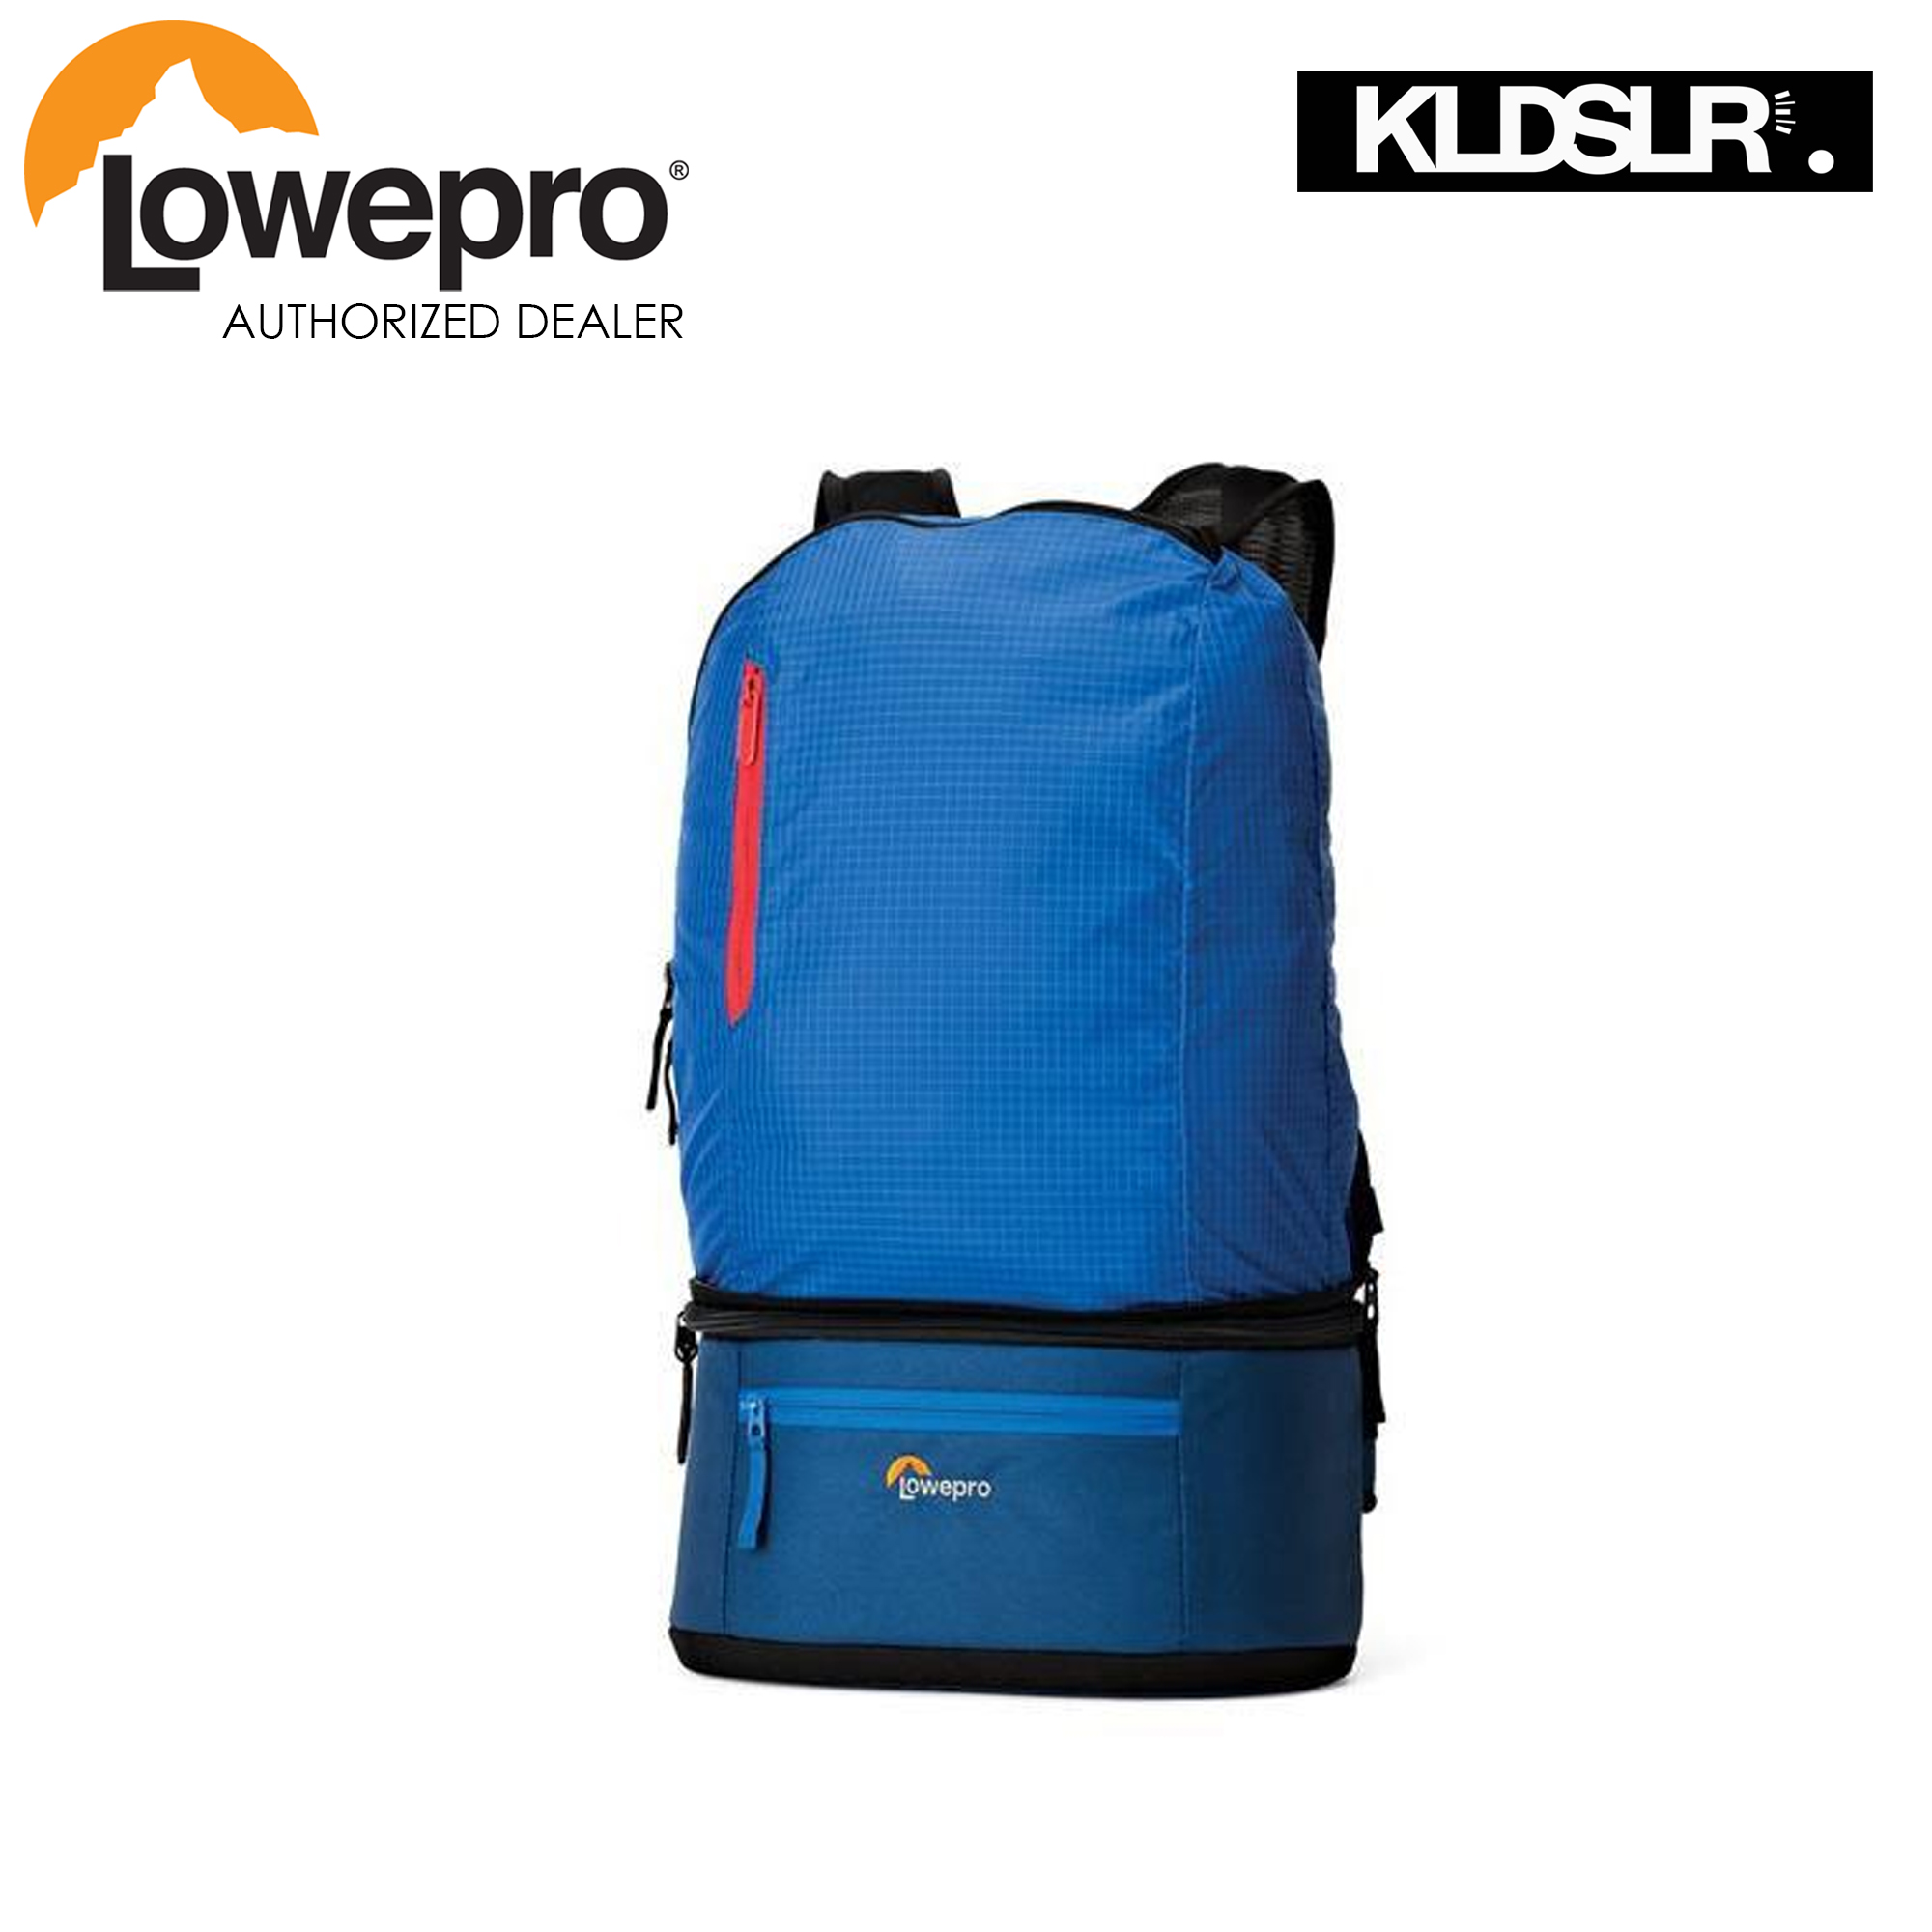 LOWEPRO PASSPORT DUO (HORIZAN BLUE/MIDNIGHT BLUE)